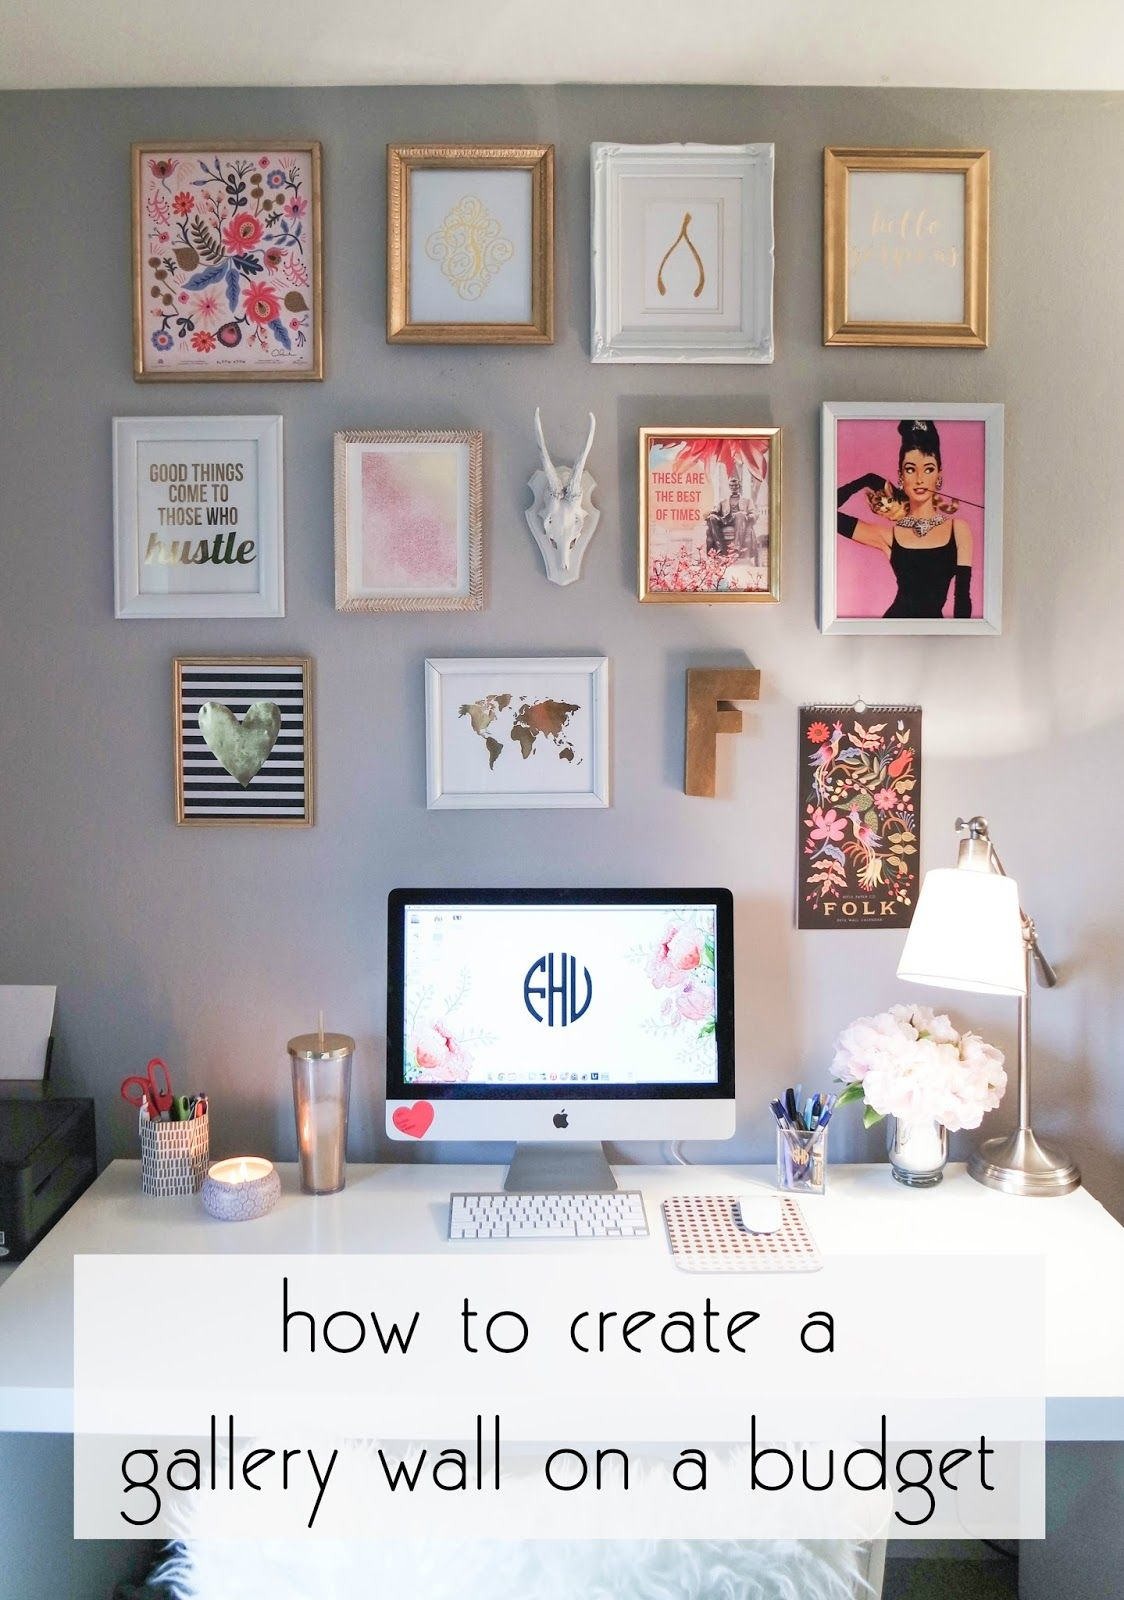 Dorm Room Wall Decor: 10 Ways To Redecorate Your Dorm Room For Relatively No